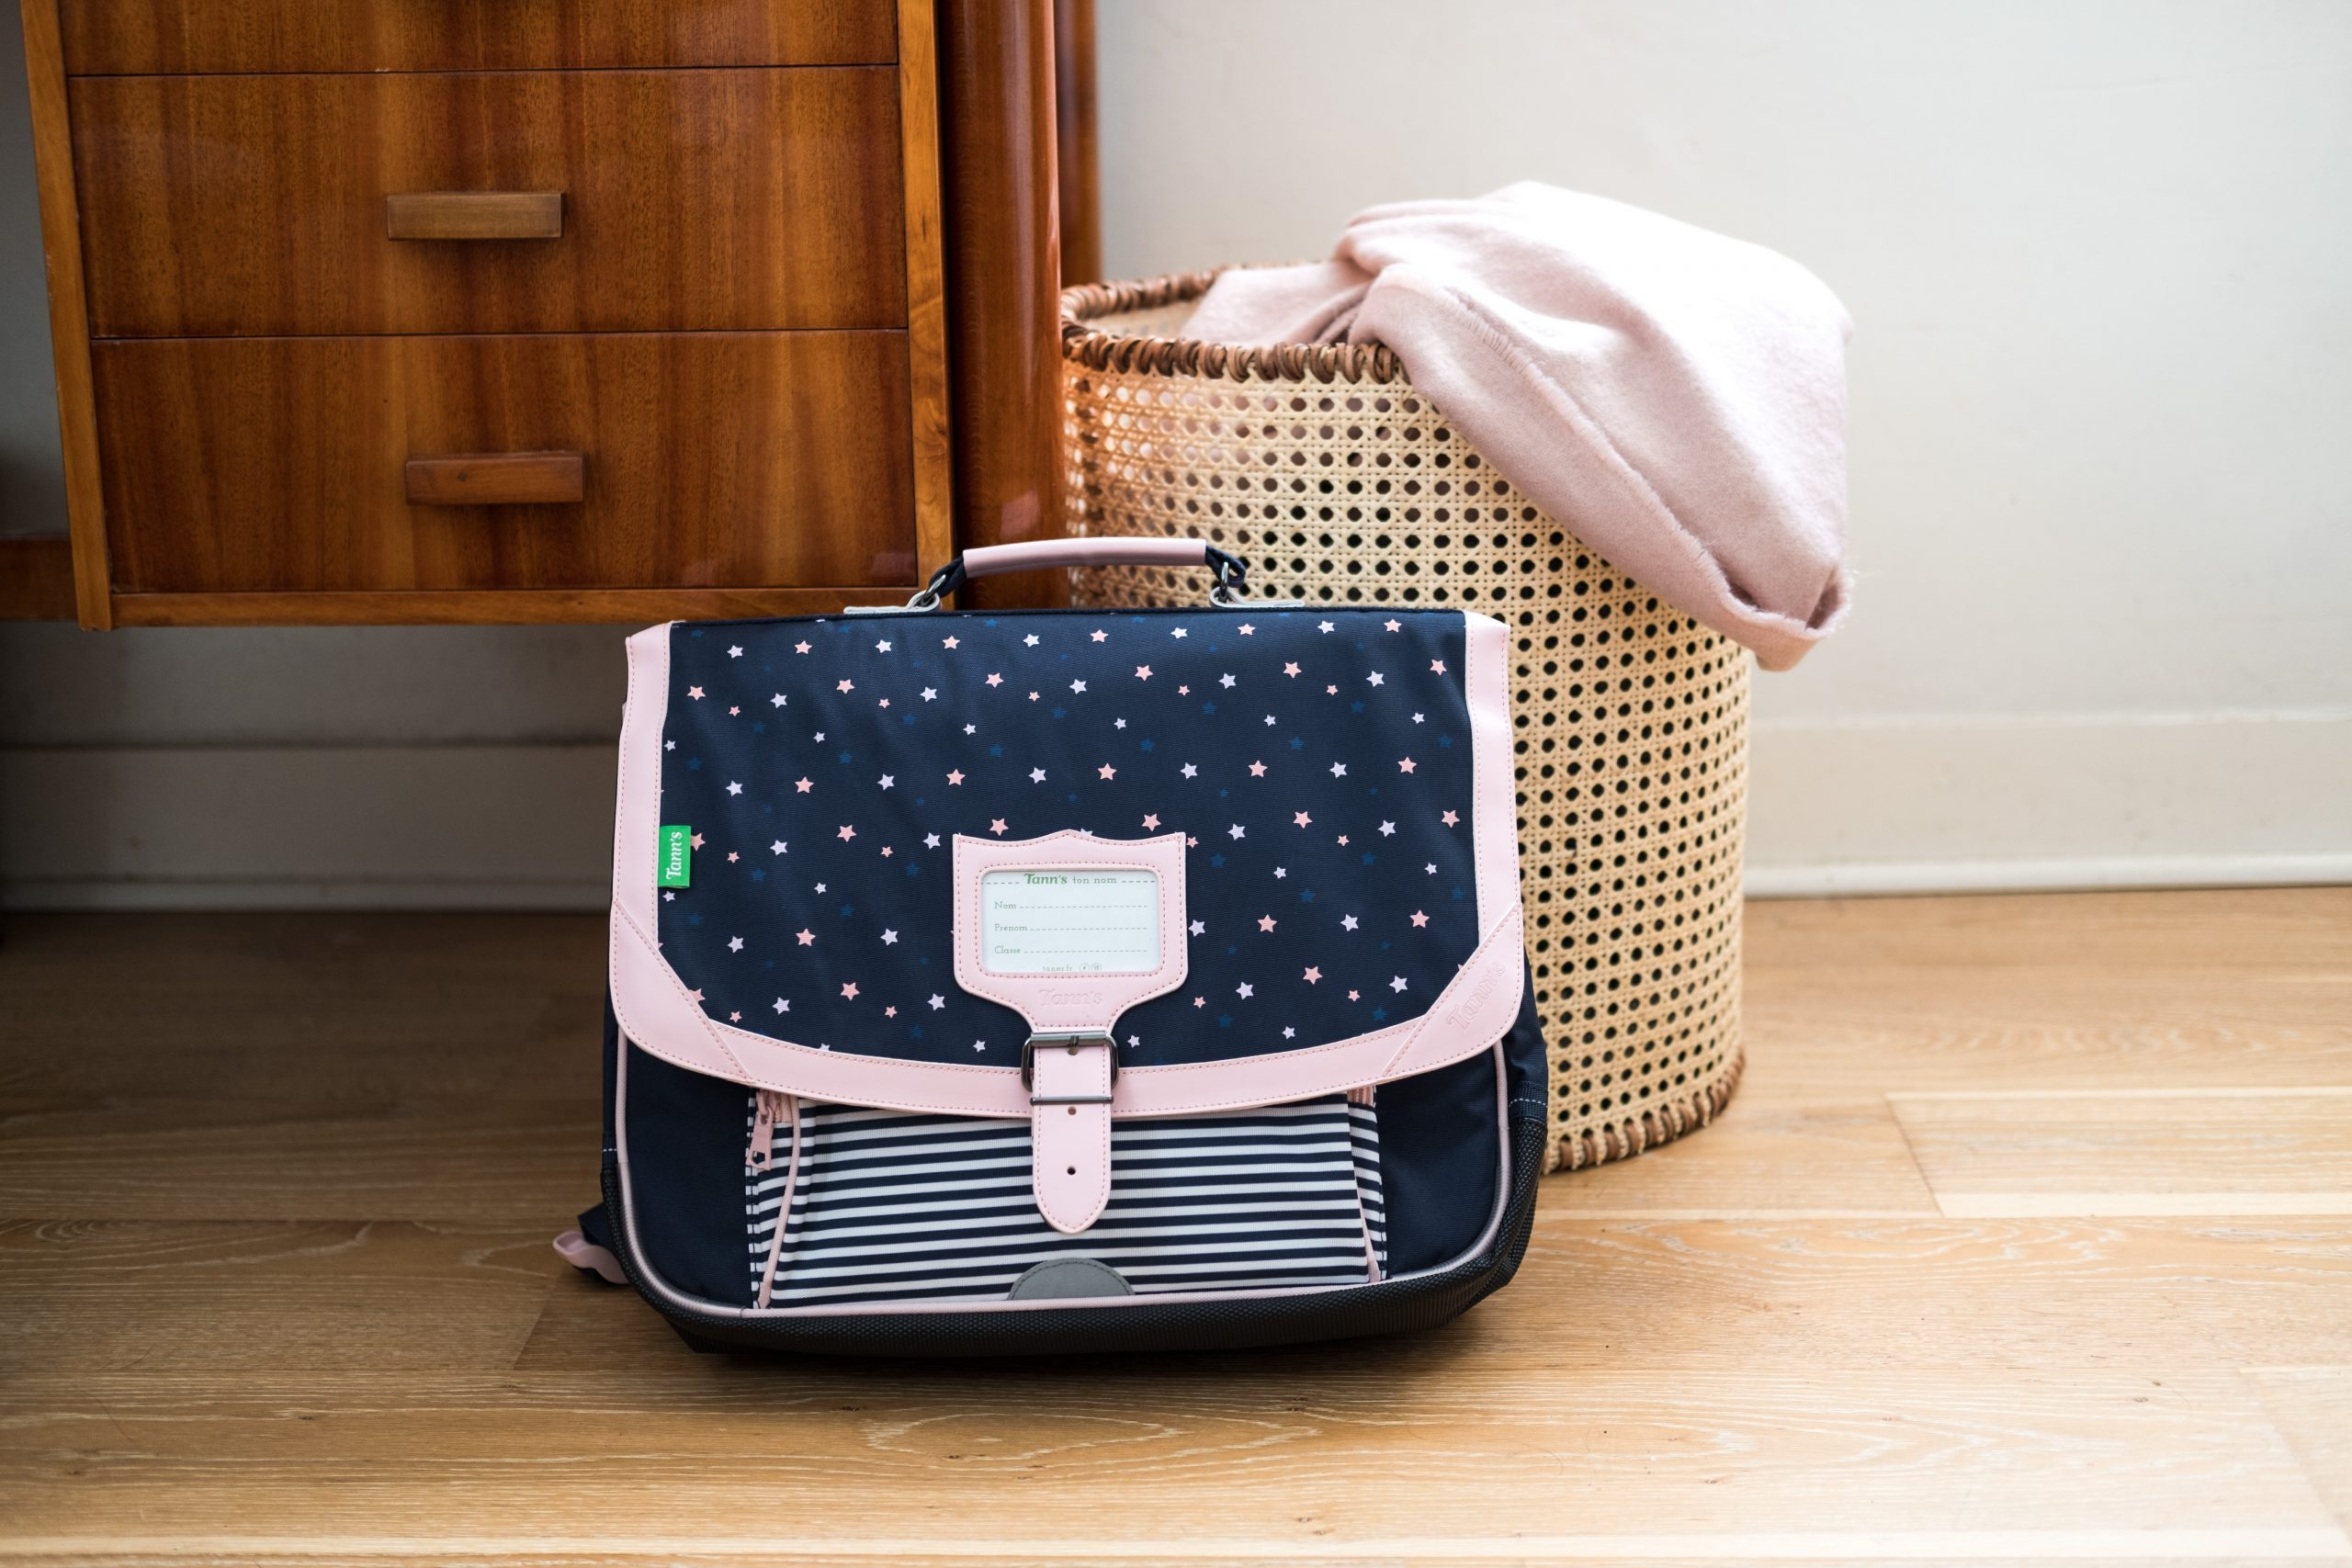 0 Blog La Cartablerie Maroquinerie Scolaire Cartable Maternelle Sac Rentree Tanns Mariniere Tendance